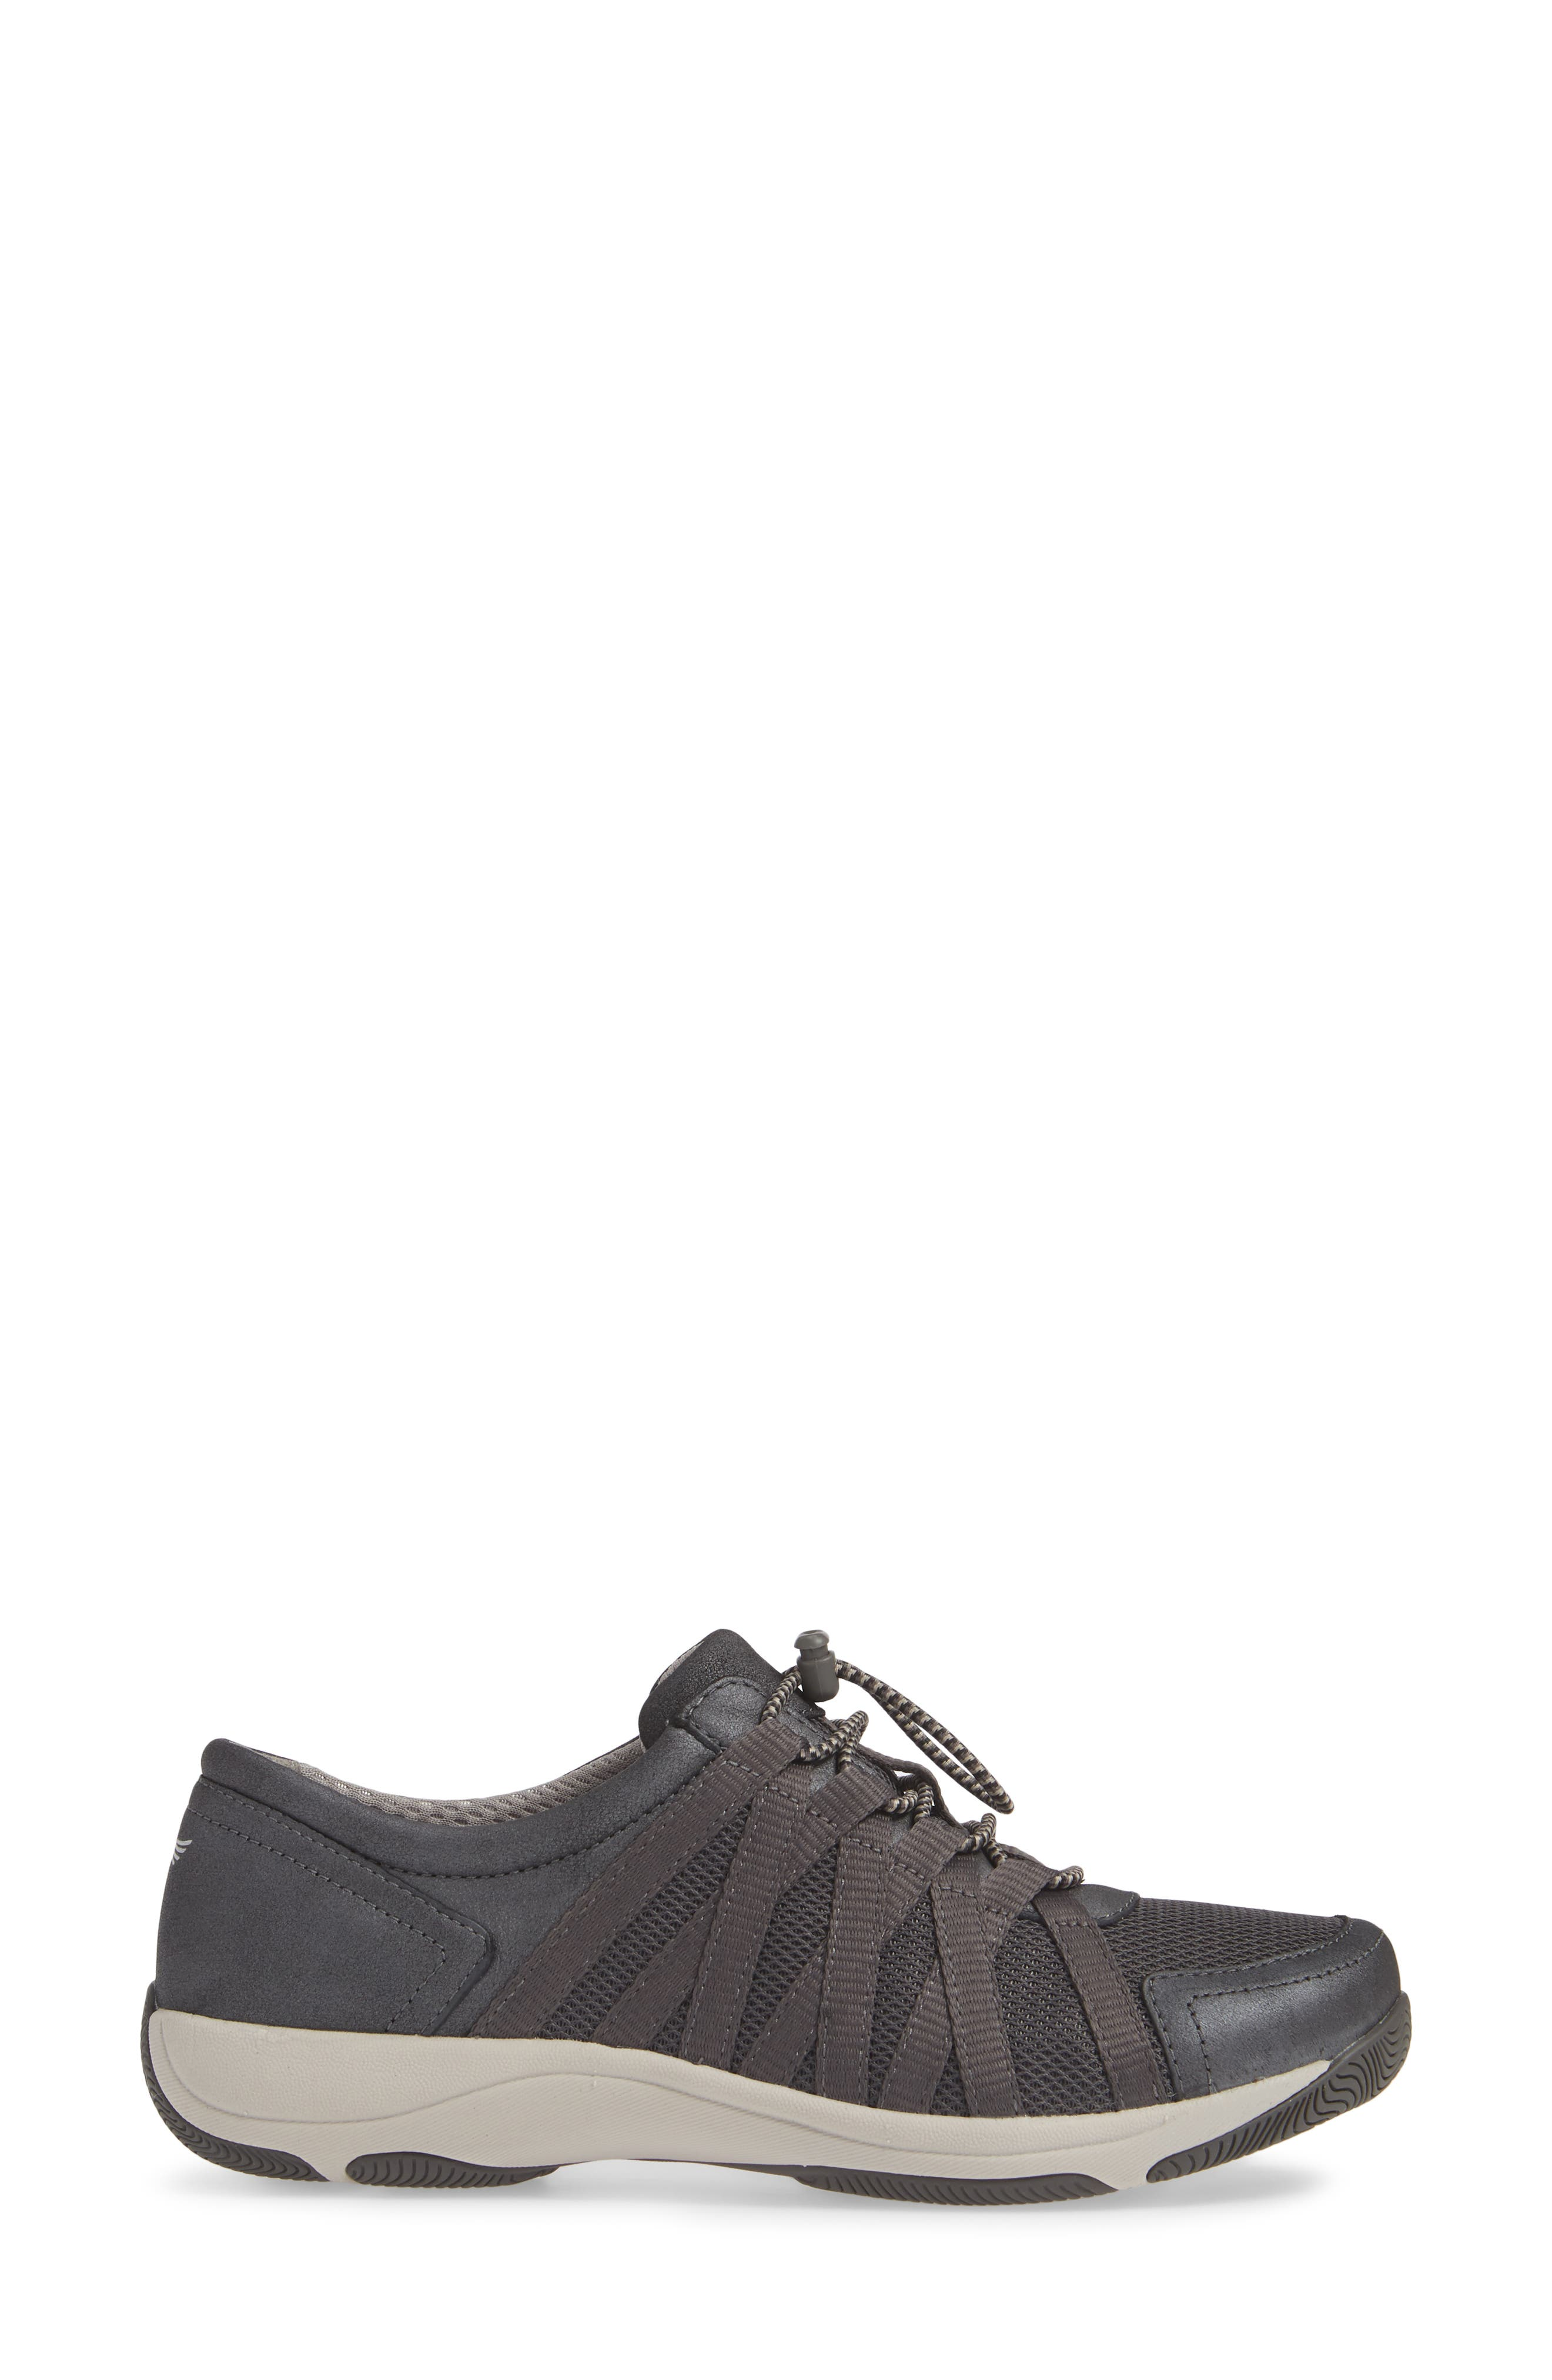 Halifax Collection Honor Sneaker,                             Alternate thumbnail 3, color,                             034